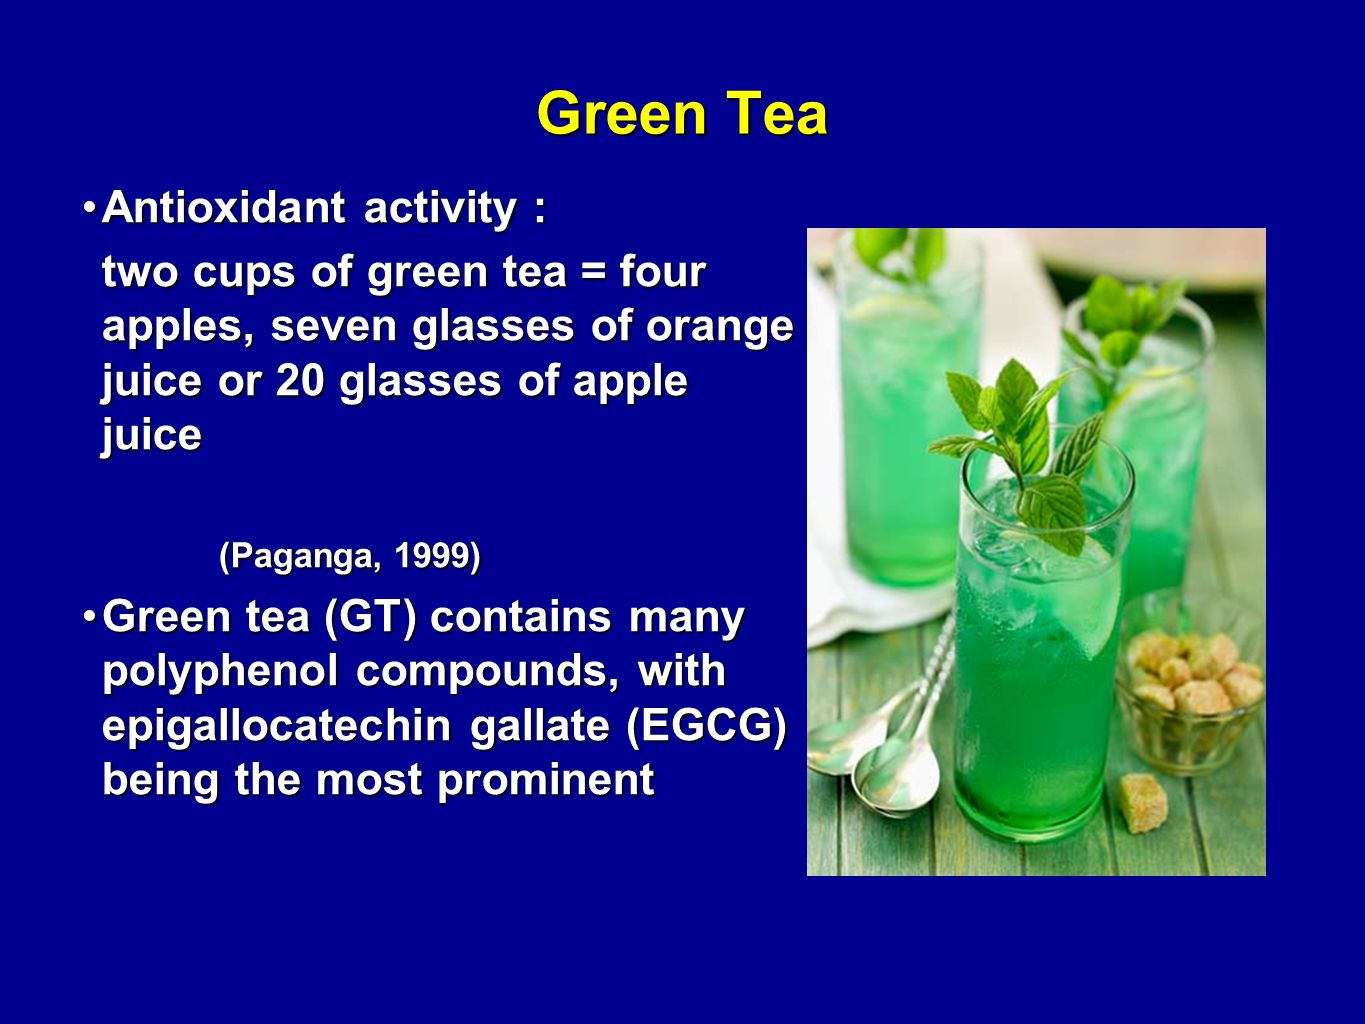 Green Tea Antioxidant activity :Antioxidant activity : two cups of green tea = four apples, seven glasses of orange juice or 20 glasses of apple juice (Paganga, 1999) (Paganga, 1999) Green tea (GT) contains many polyphenol compounds, with epigallocatechin gallate (EGCG) being the most prominentGreen tea (GT) contains many polyphenol compounds, with epigallocatechin gallate (EGCG) being the most prominent